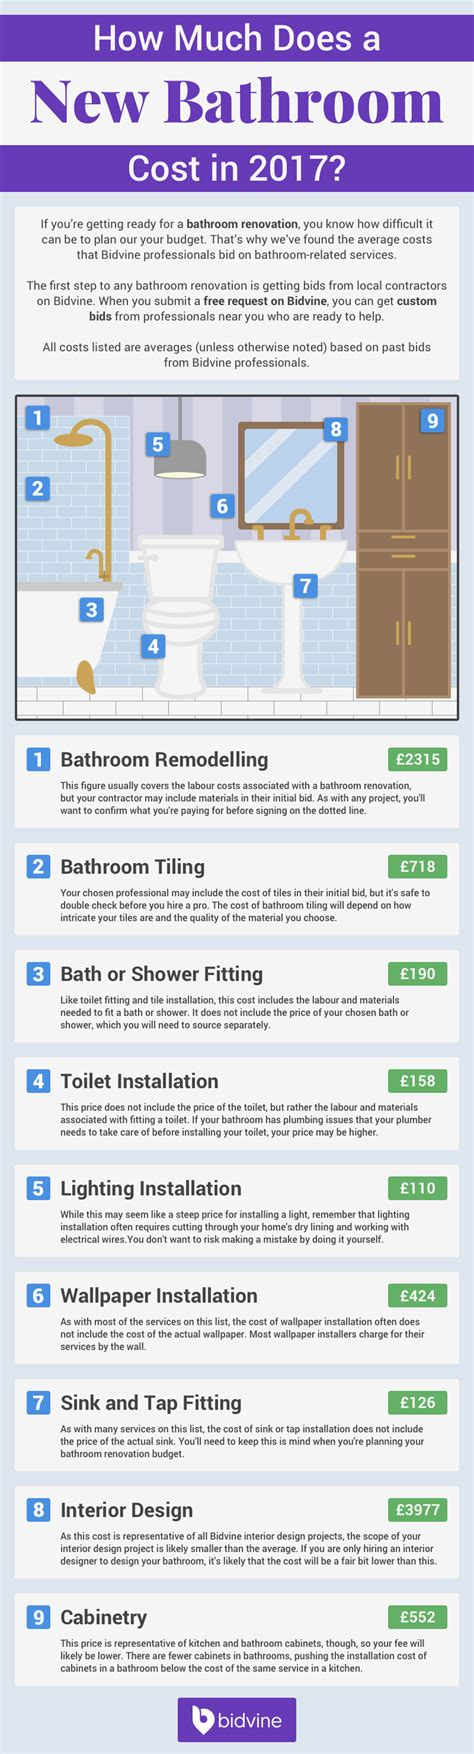 how much to fit new bathroom how much does it cost to fit a new bathroom